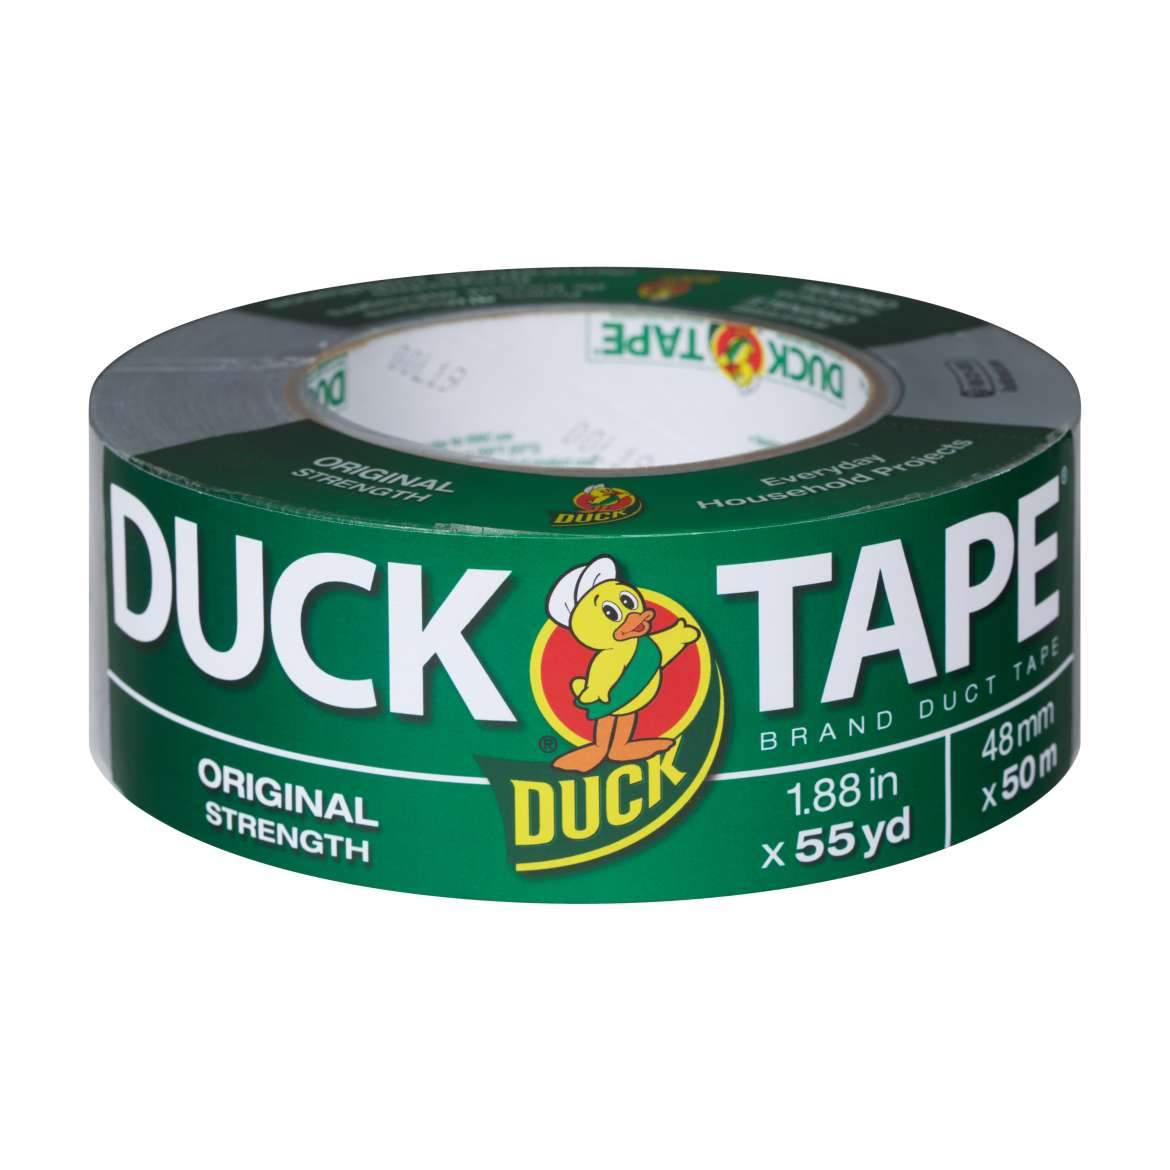 Original Strength Duck Tape® Brand Duct Tape - Silver, 1.88 in. x 55 yd. Image